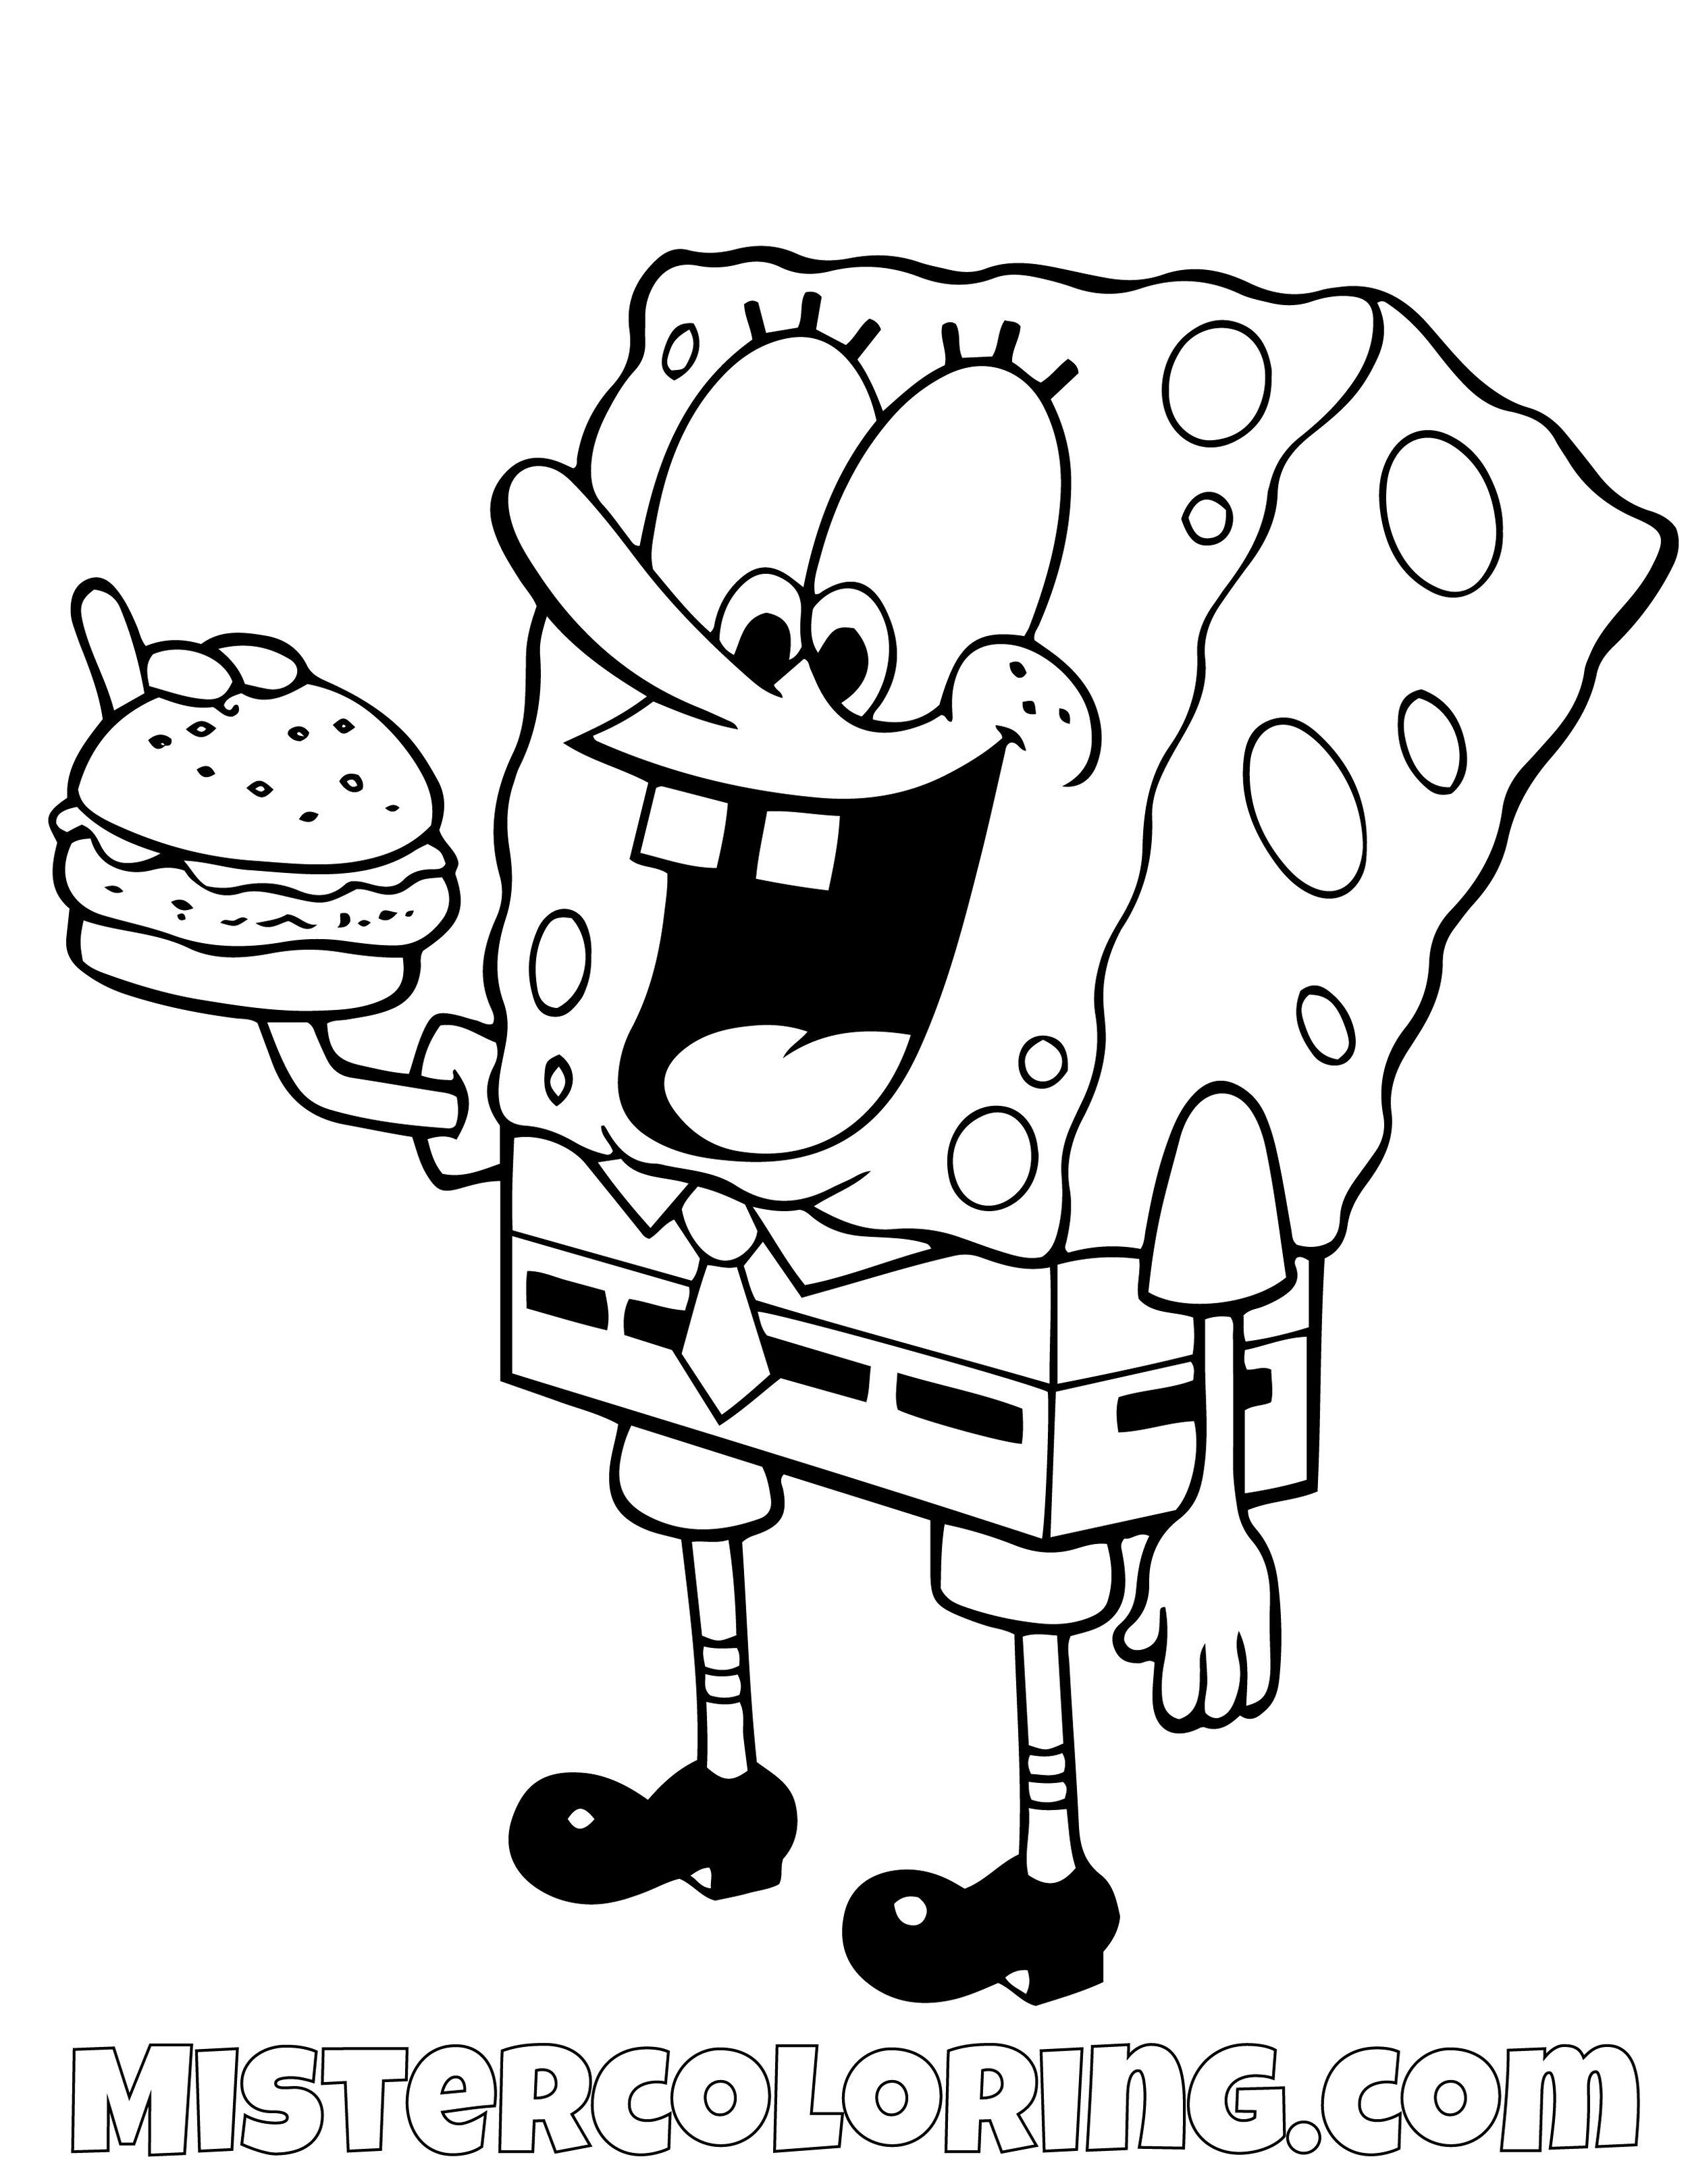 Free Printable Spongebob Squarepants Coloring Pages For Kids ... | 1294x1000